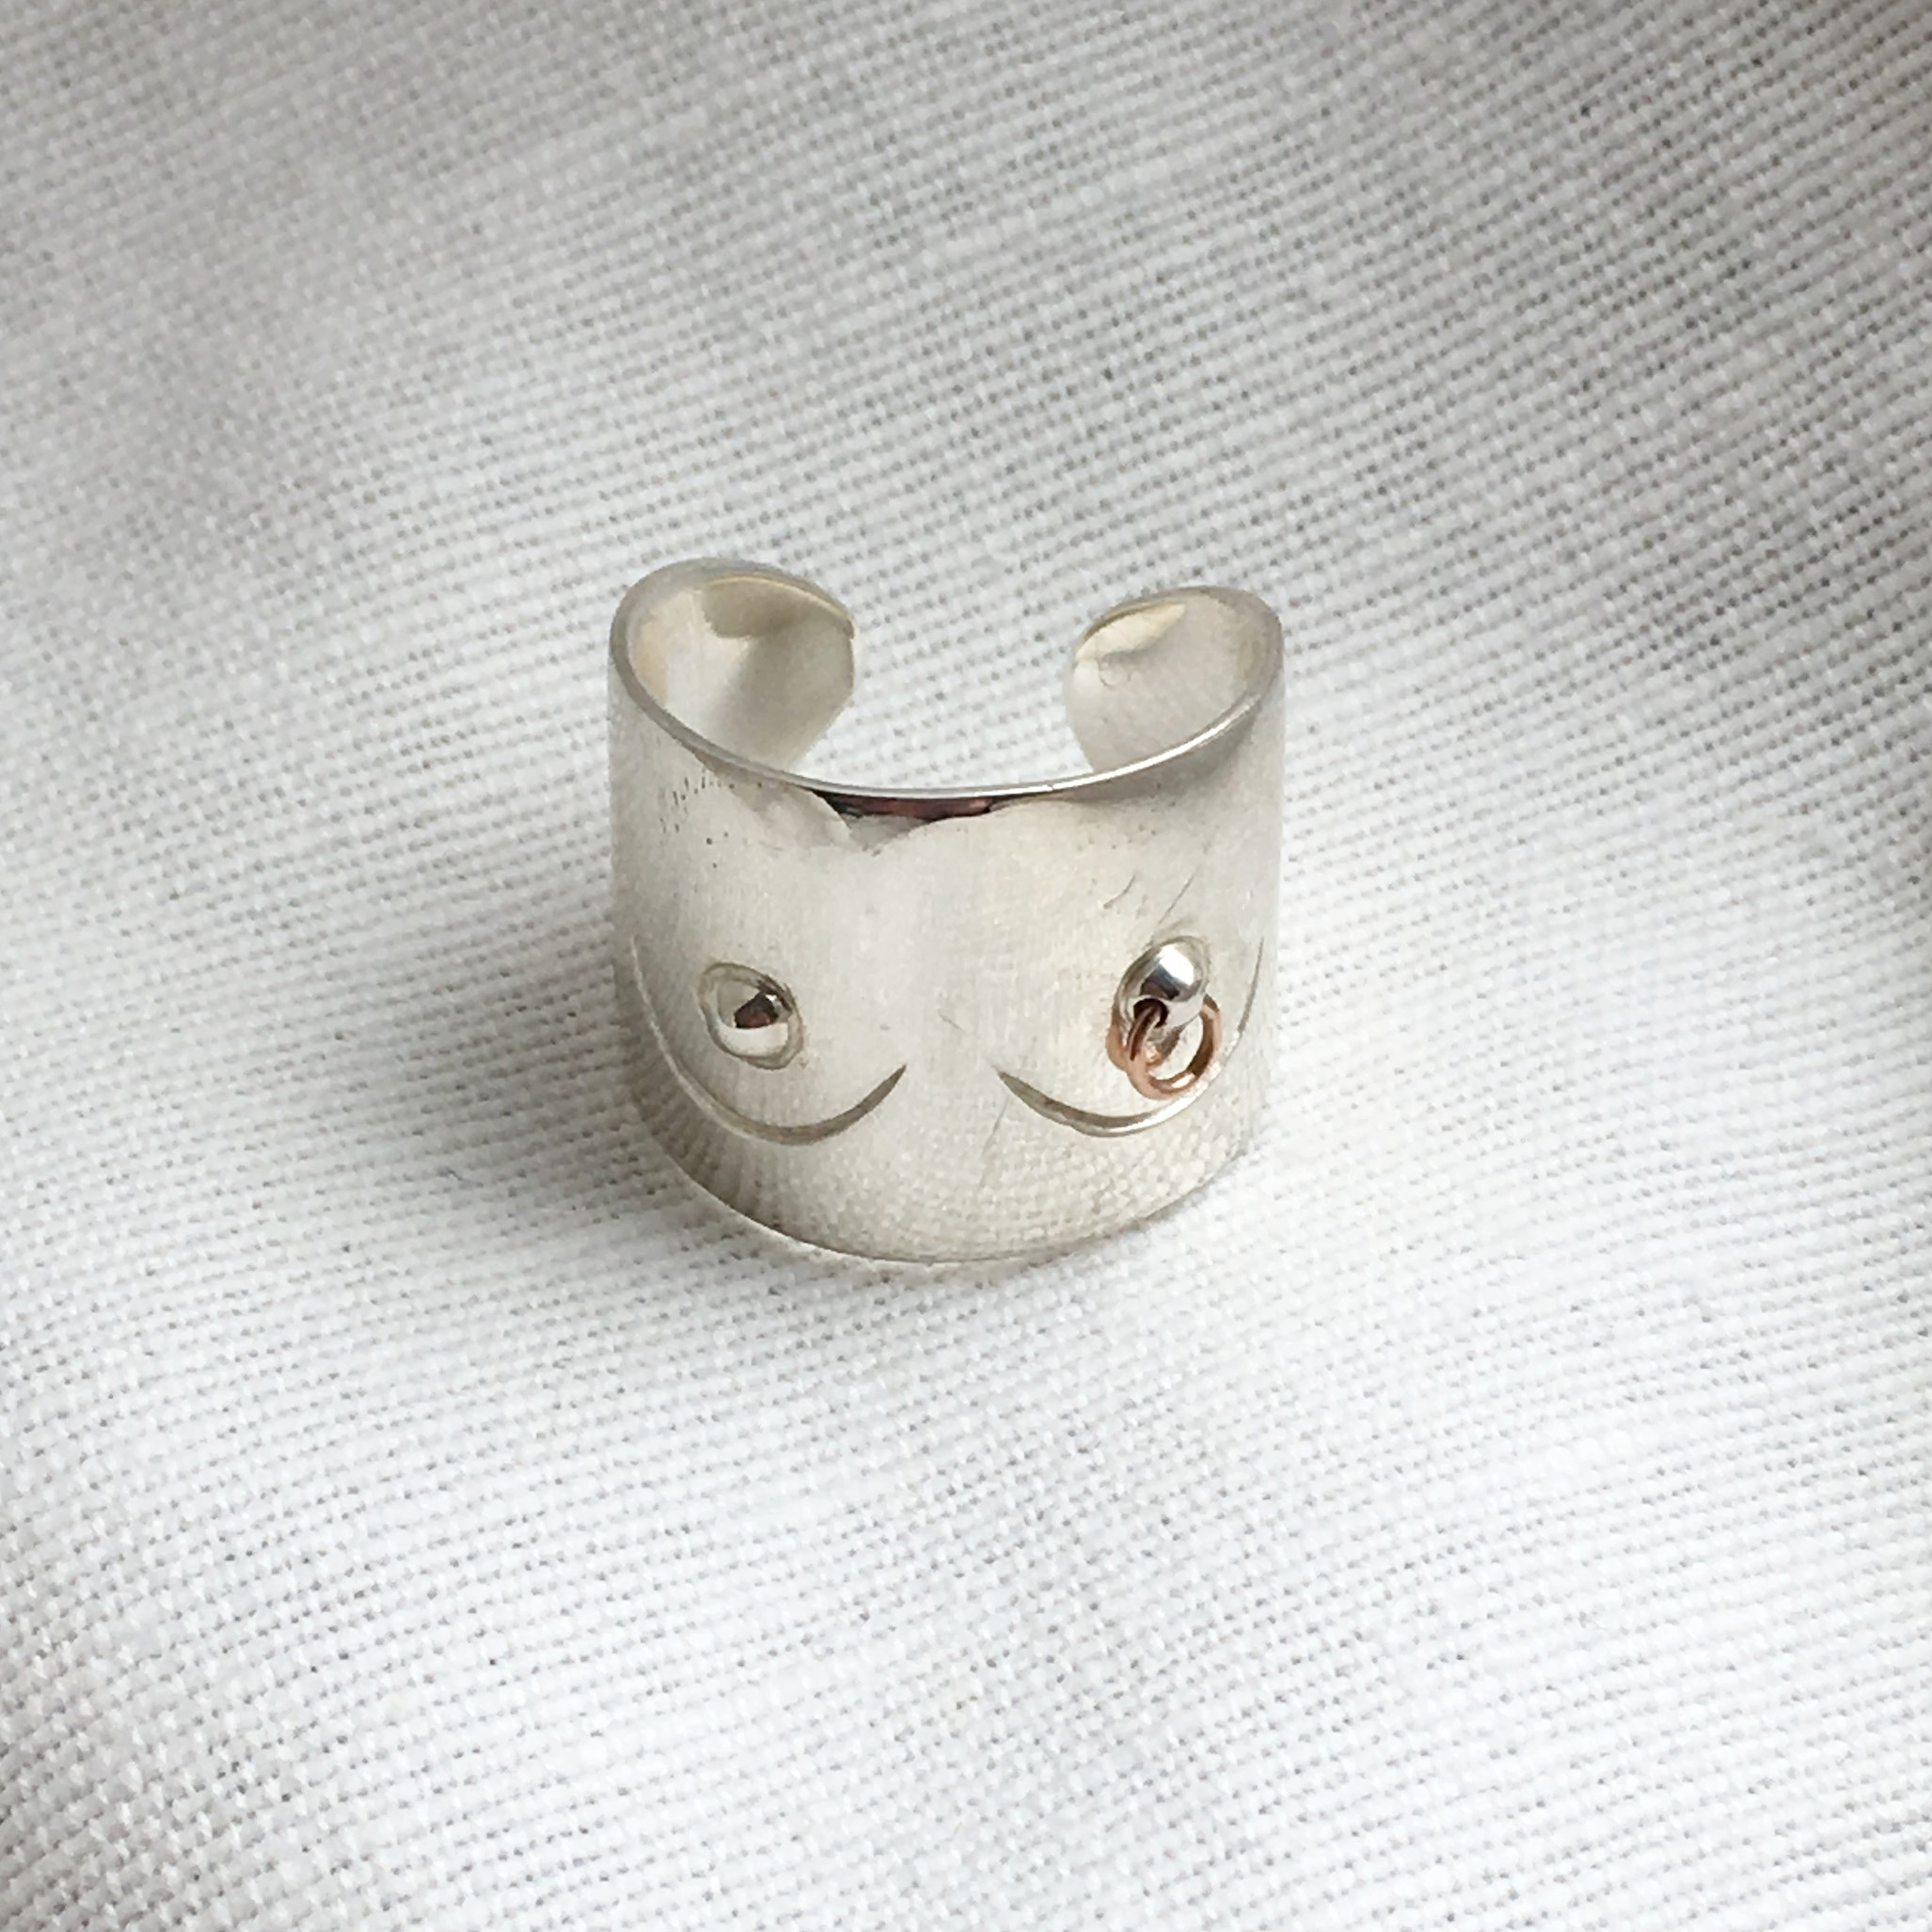 SILVER PIERCED BOOB RING WITH 14K ROSE GOLD PIERCING